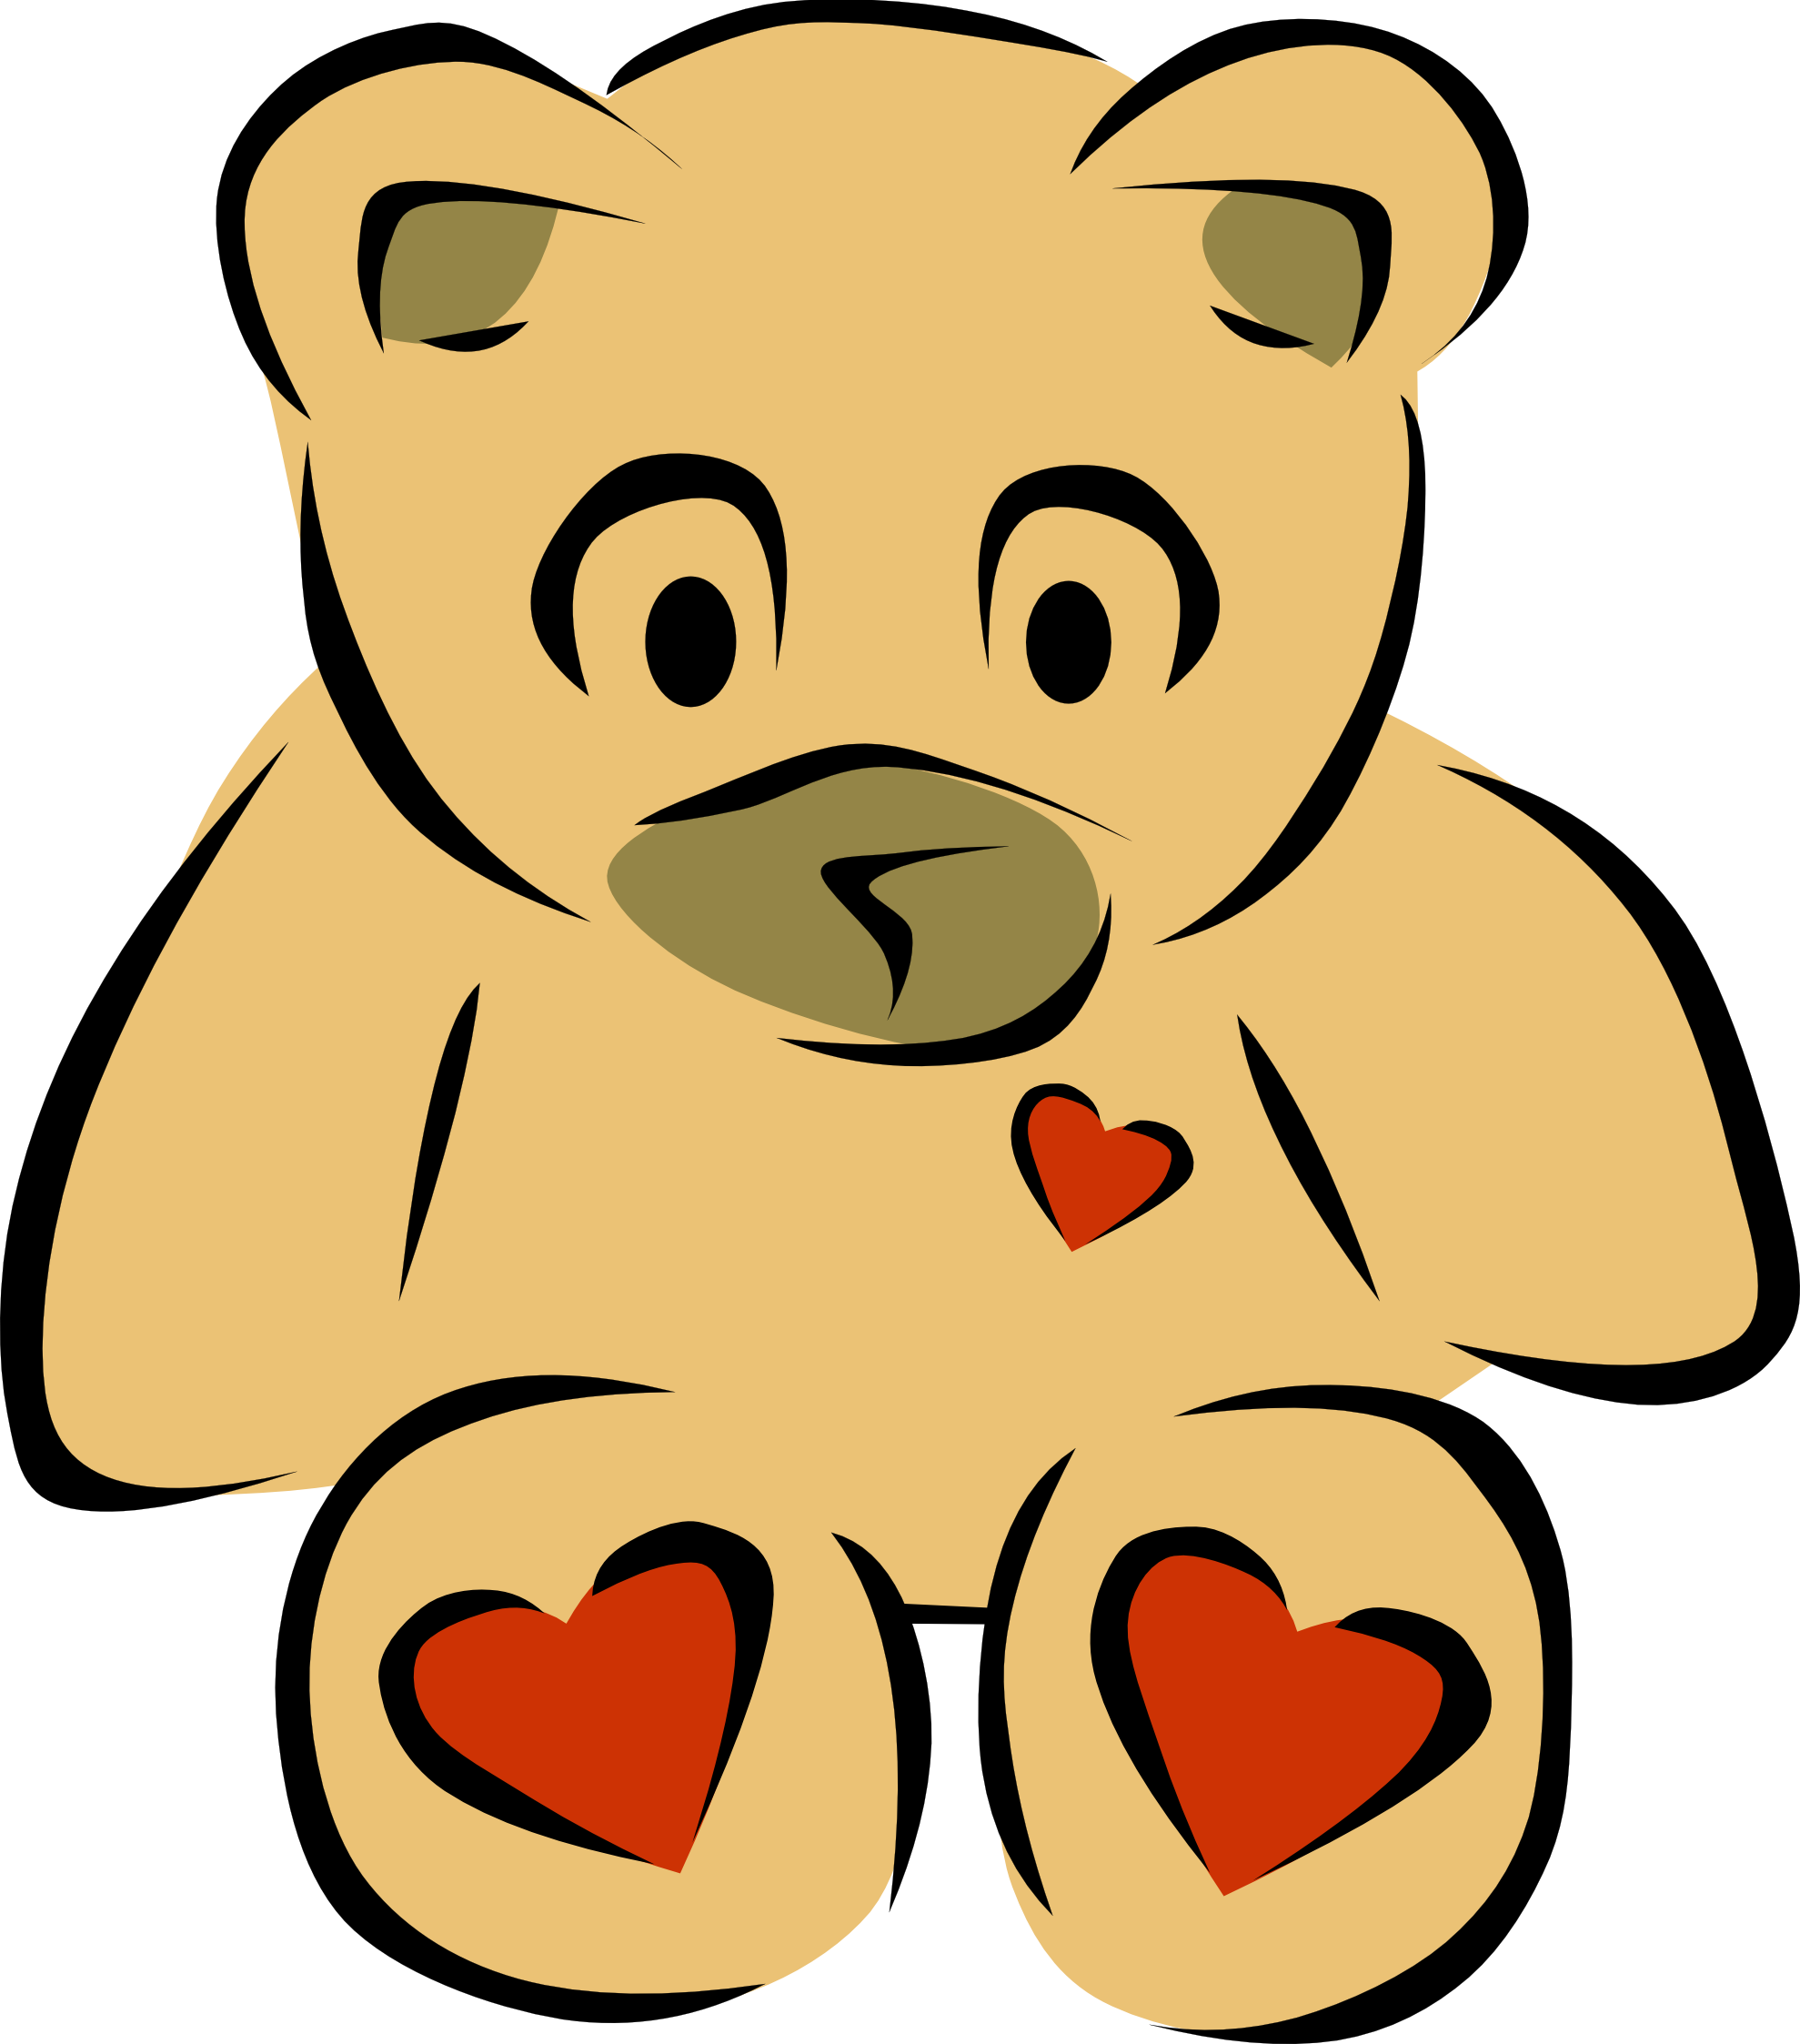 Pink Teddy Bear Clipart | Clipart Panda - Free Clipart Images